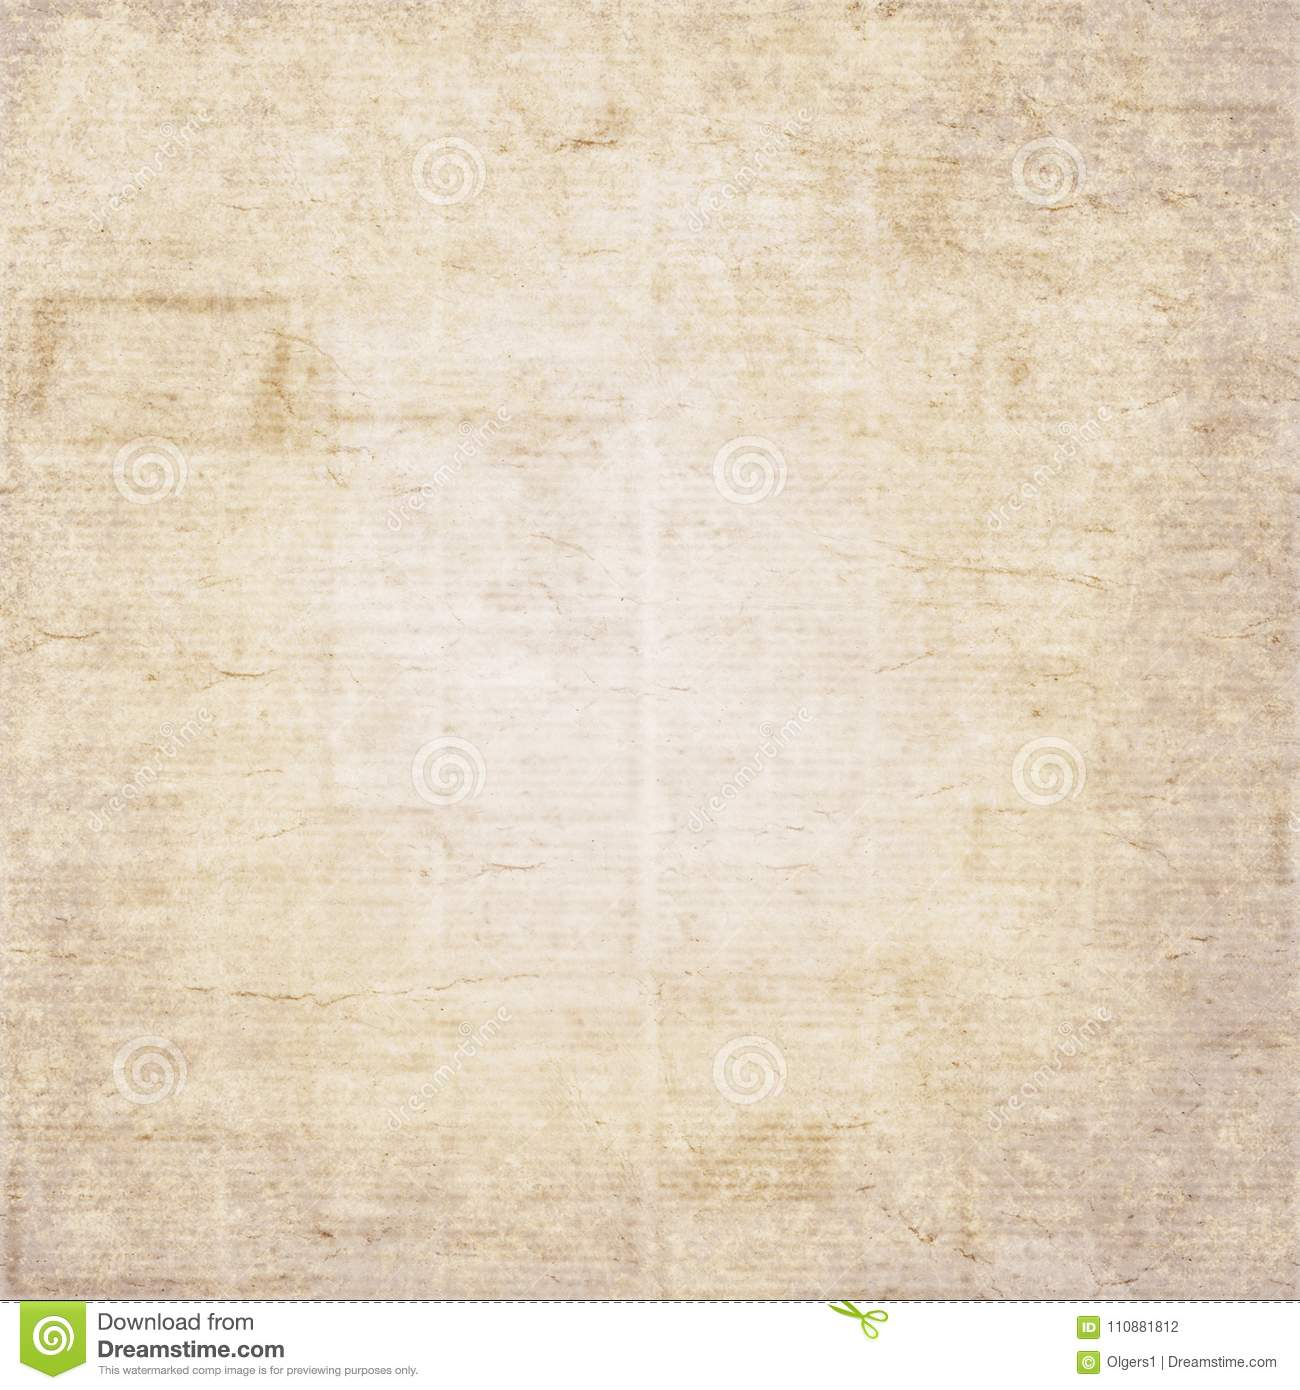 Vintage Newspaper Texture Background